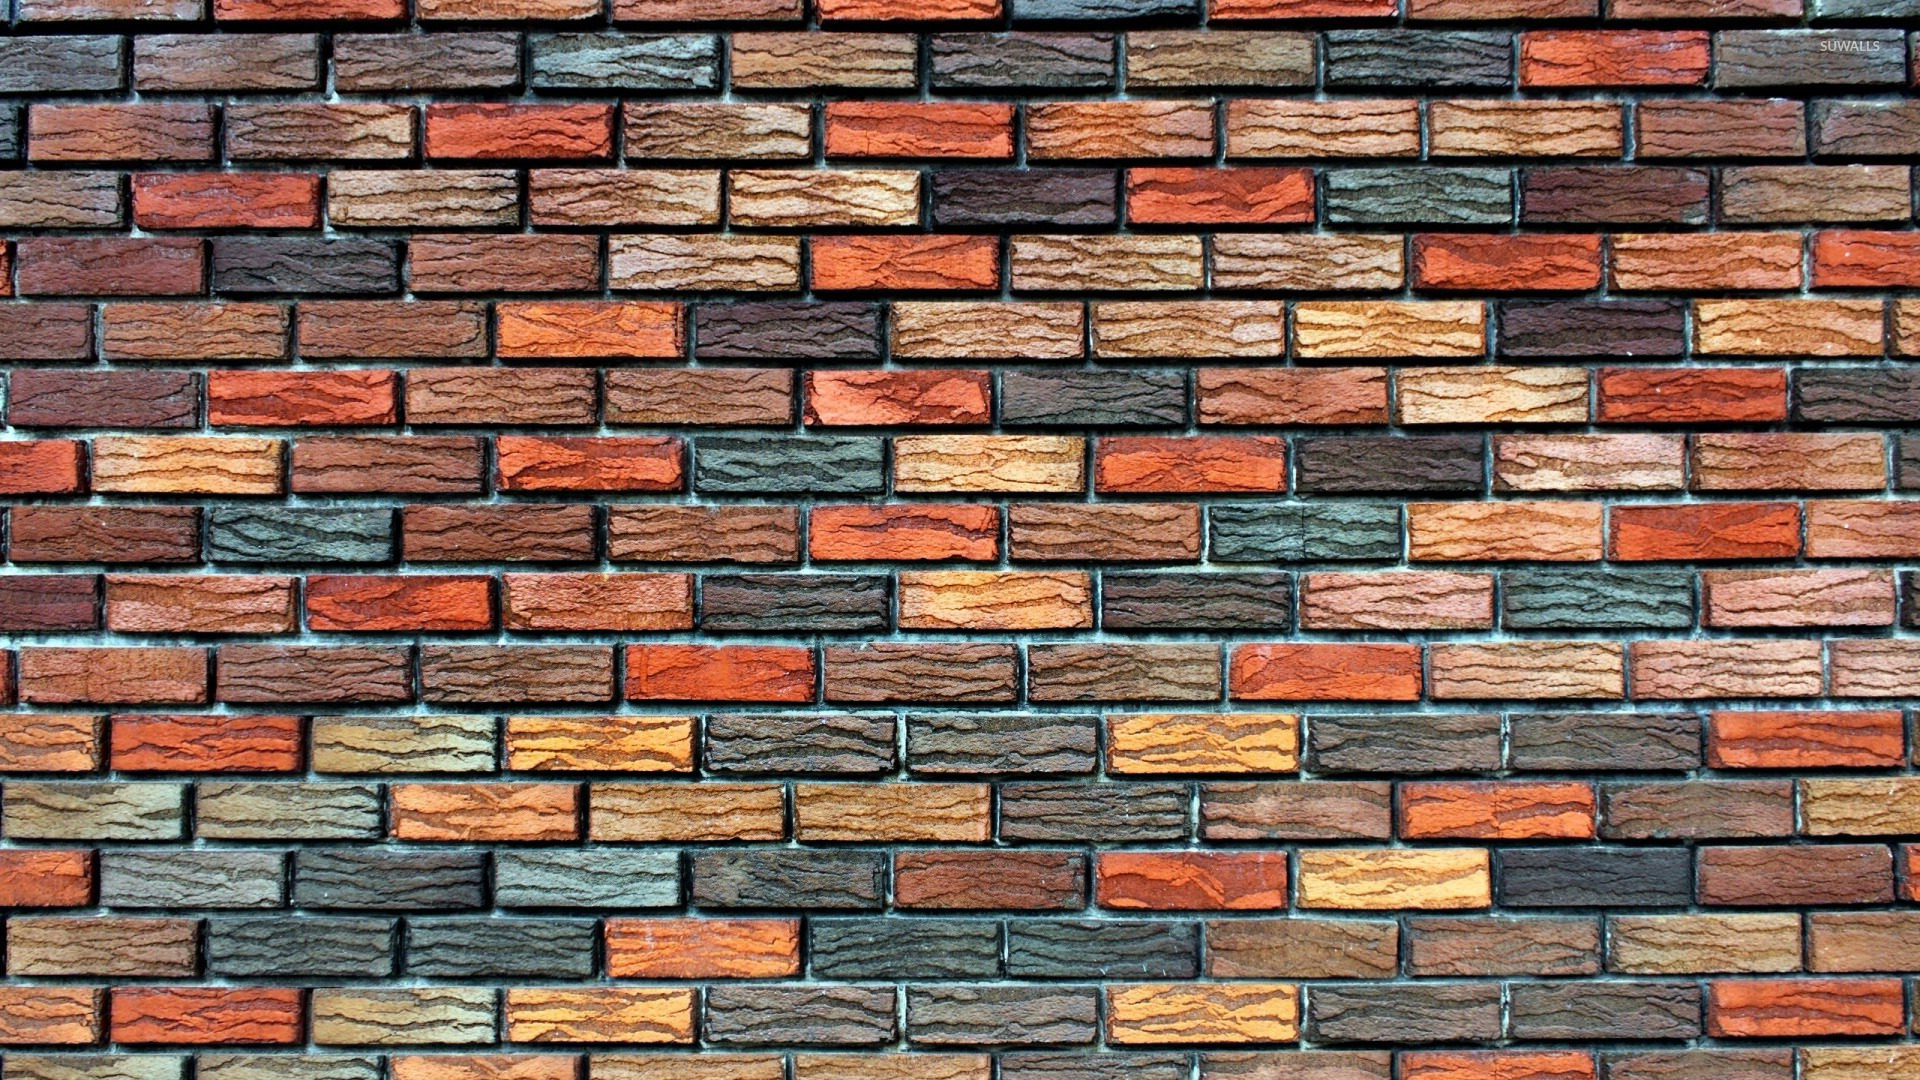 Brick wallpaper colors hd wallpapers hd backgrounds for Pretty wallpaper for walls